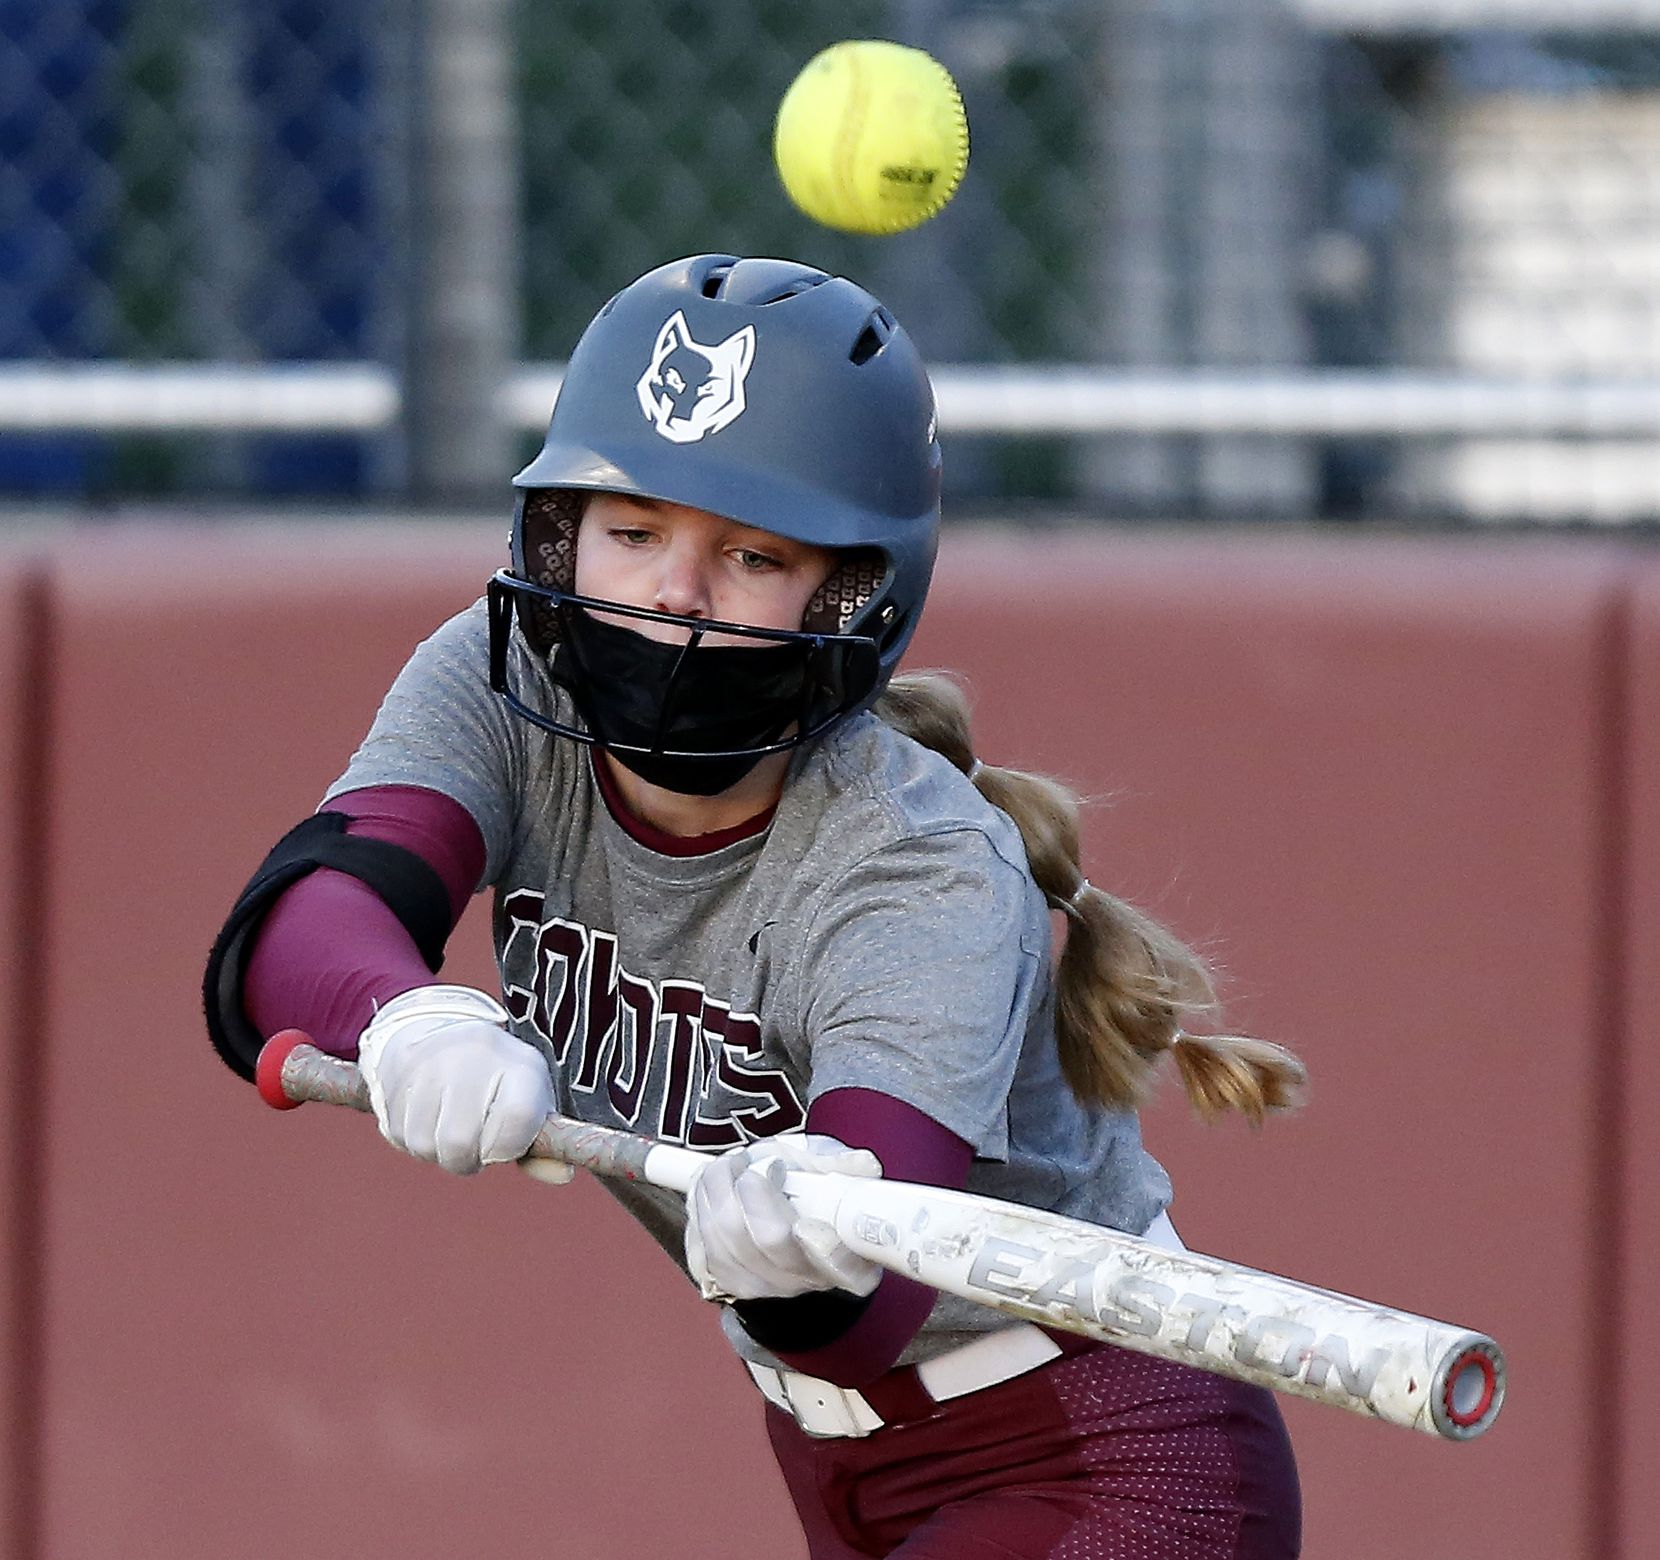 Heritage pitcher Jensin Hall (51) pops out on a bunt attempt in the second inning as Heritage High School hosted Memorial High School for the District 9-5A softball championship in Frisco on Tuesday, April 20, 2021. (Stewart F. House/Special Contributor)